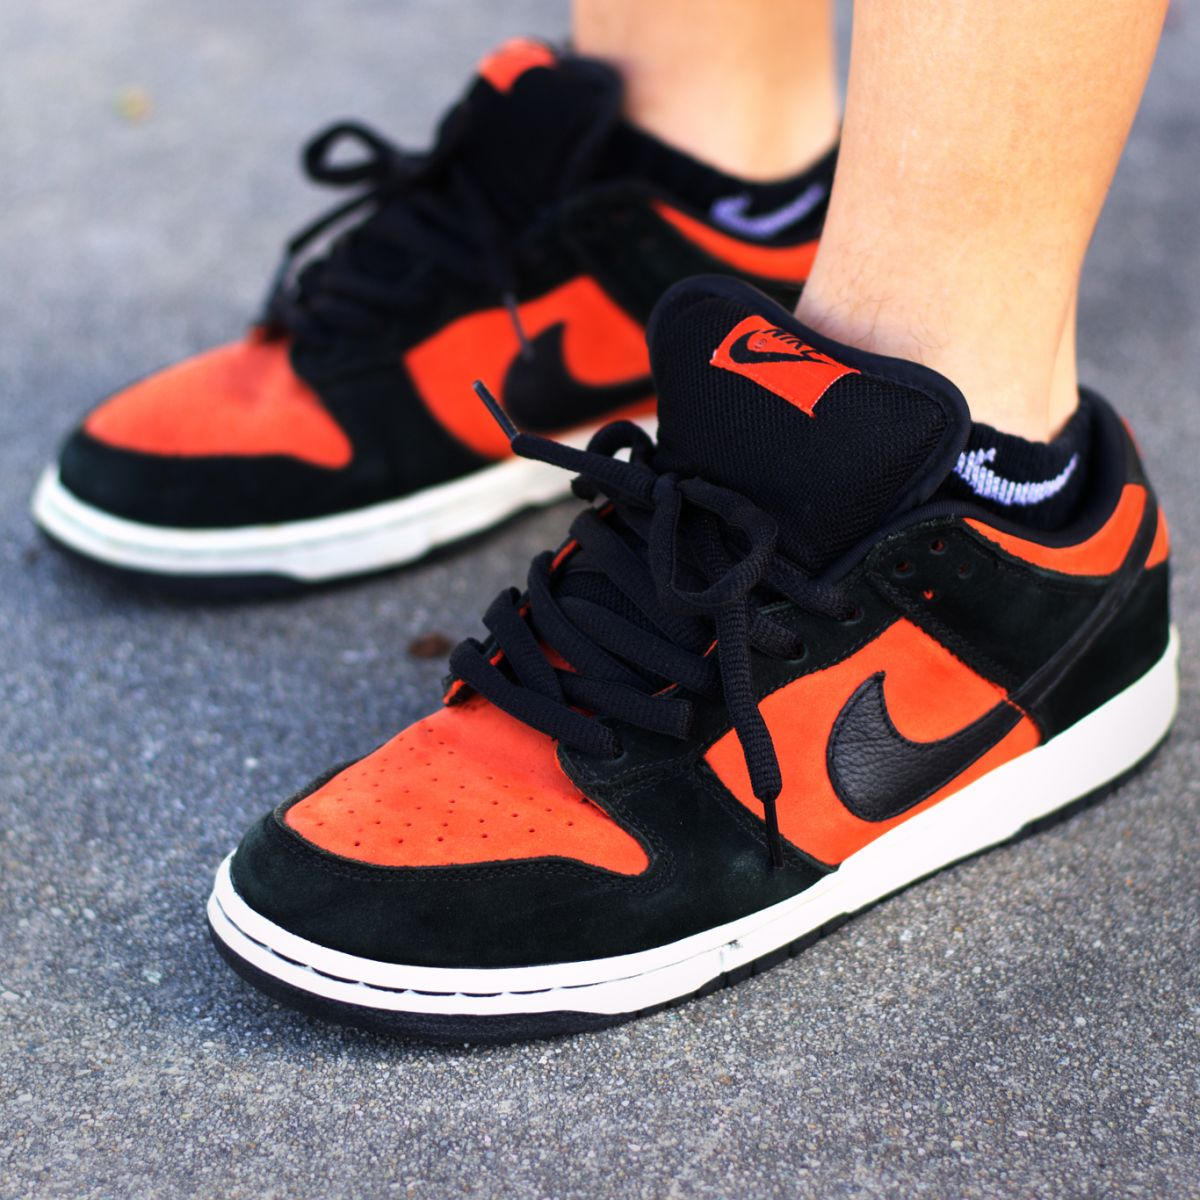 Nike SB Dunk Low 'Flash'